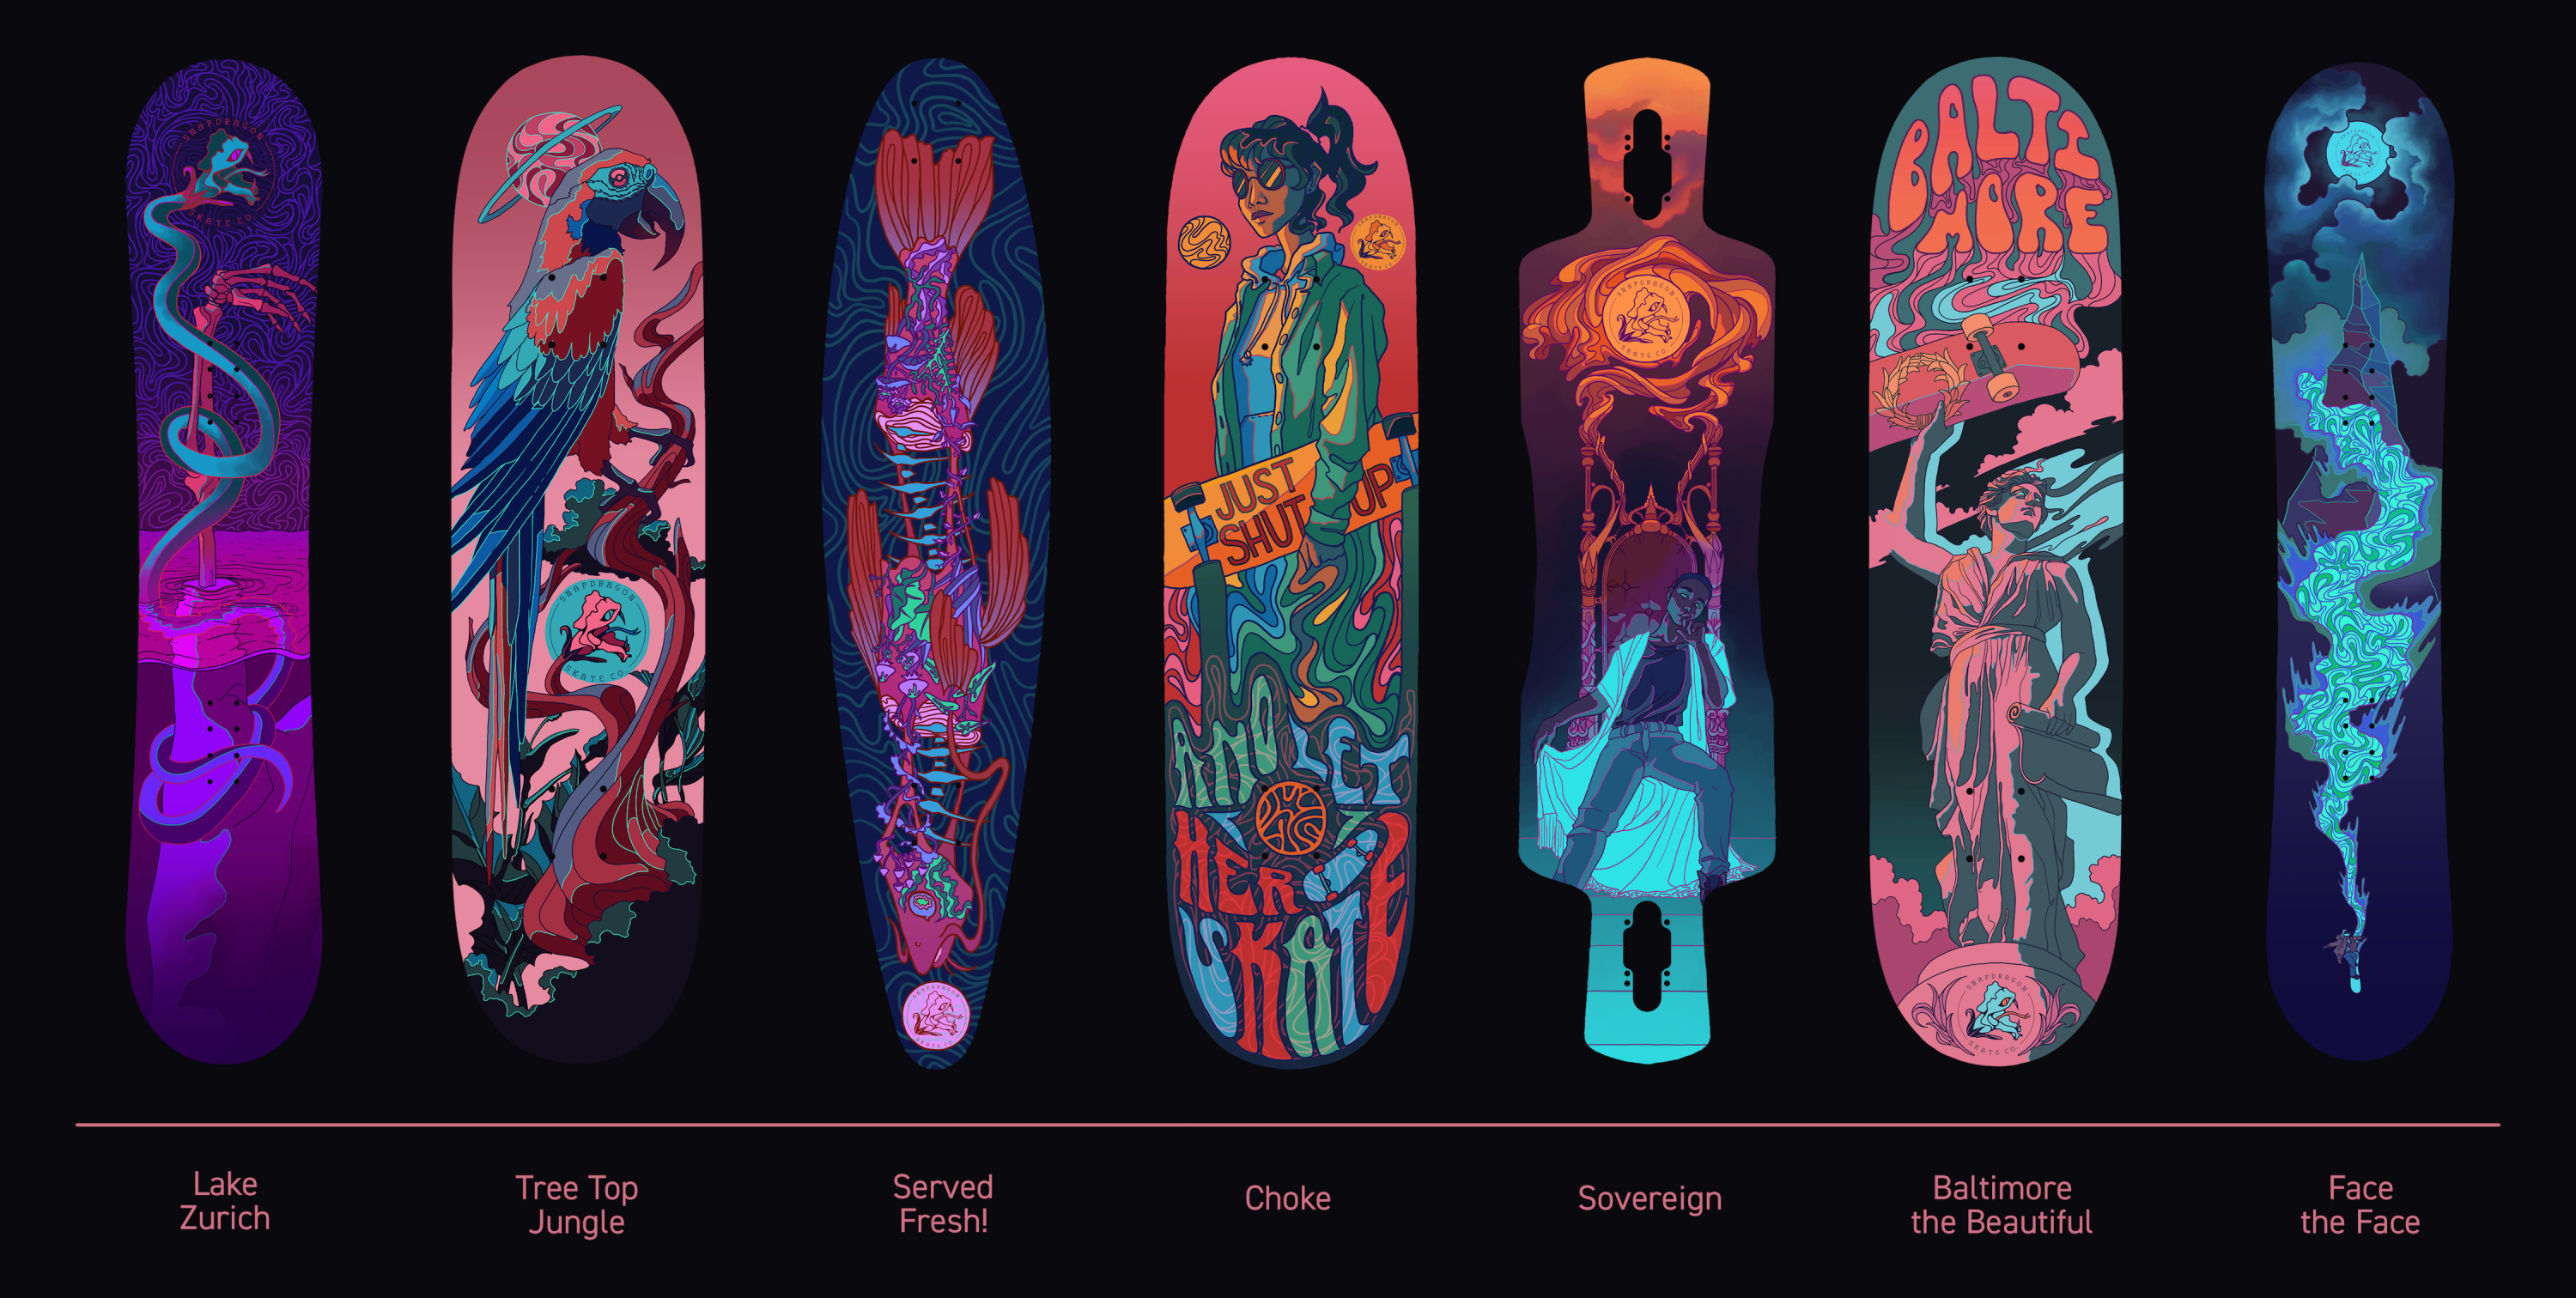 """A series of seven boards is pictured. The first board is a snowboard titled """"Lake Zurich"""", it features an arm submerged in purple lake water. The portion of the arm that is sticking out of the water is merely the bones of the arm with no flesh o"""